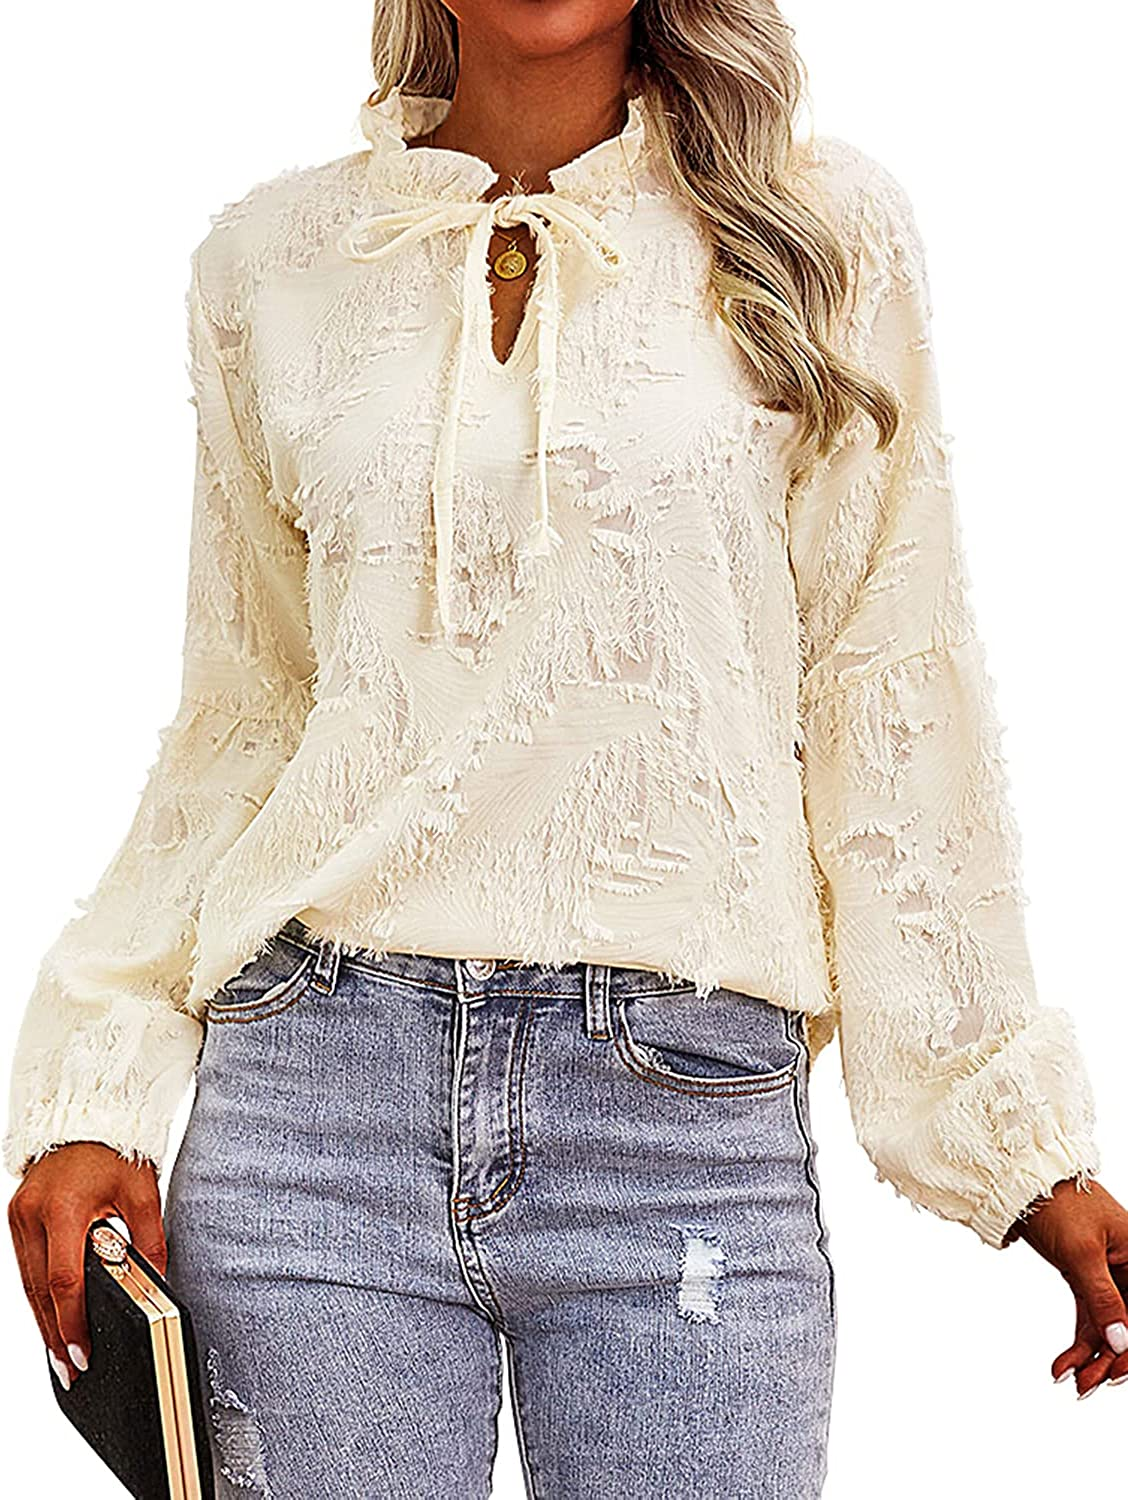 MYMORE Womens Bubble New arrival Long Sleeve High Neck V Blouses Casual Attention brand Eleg